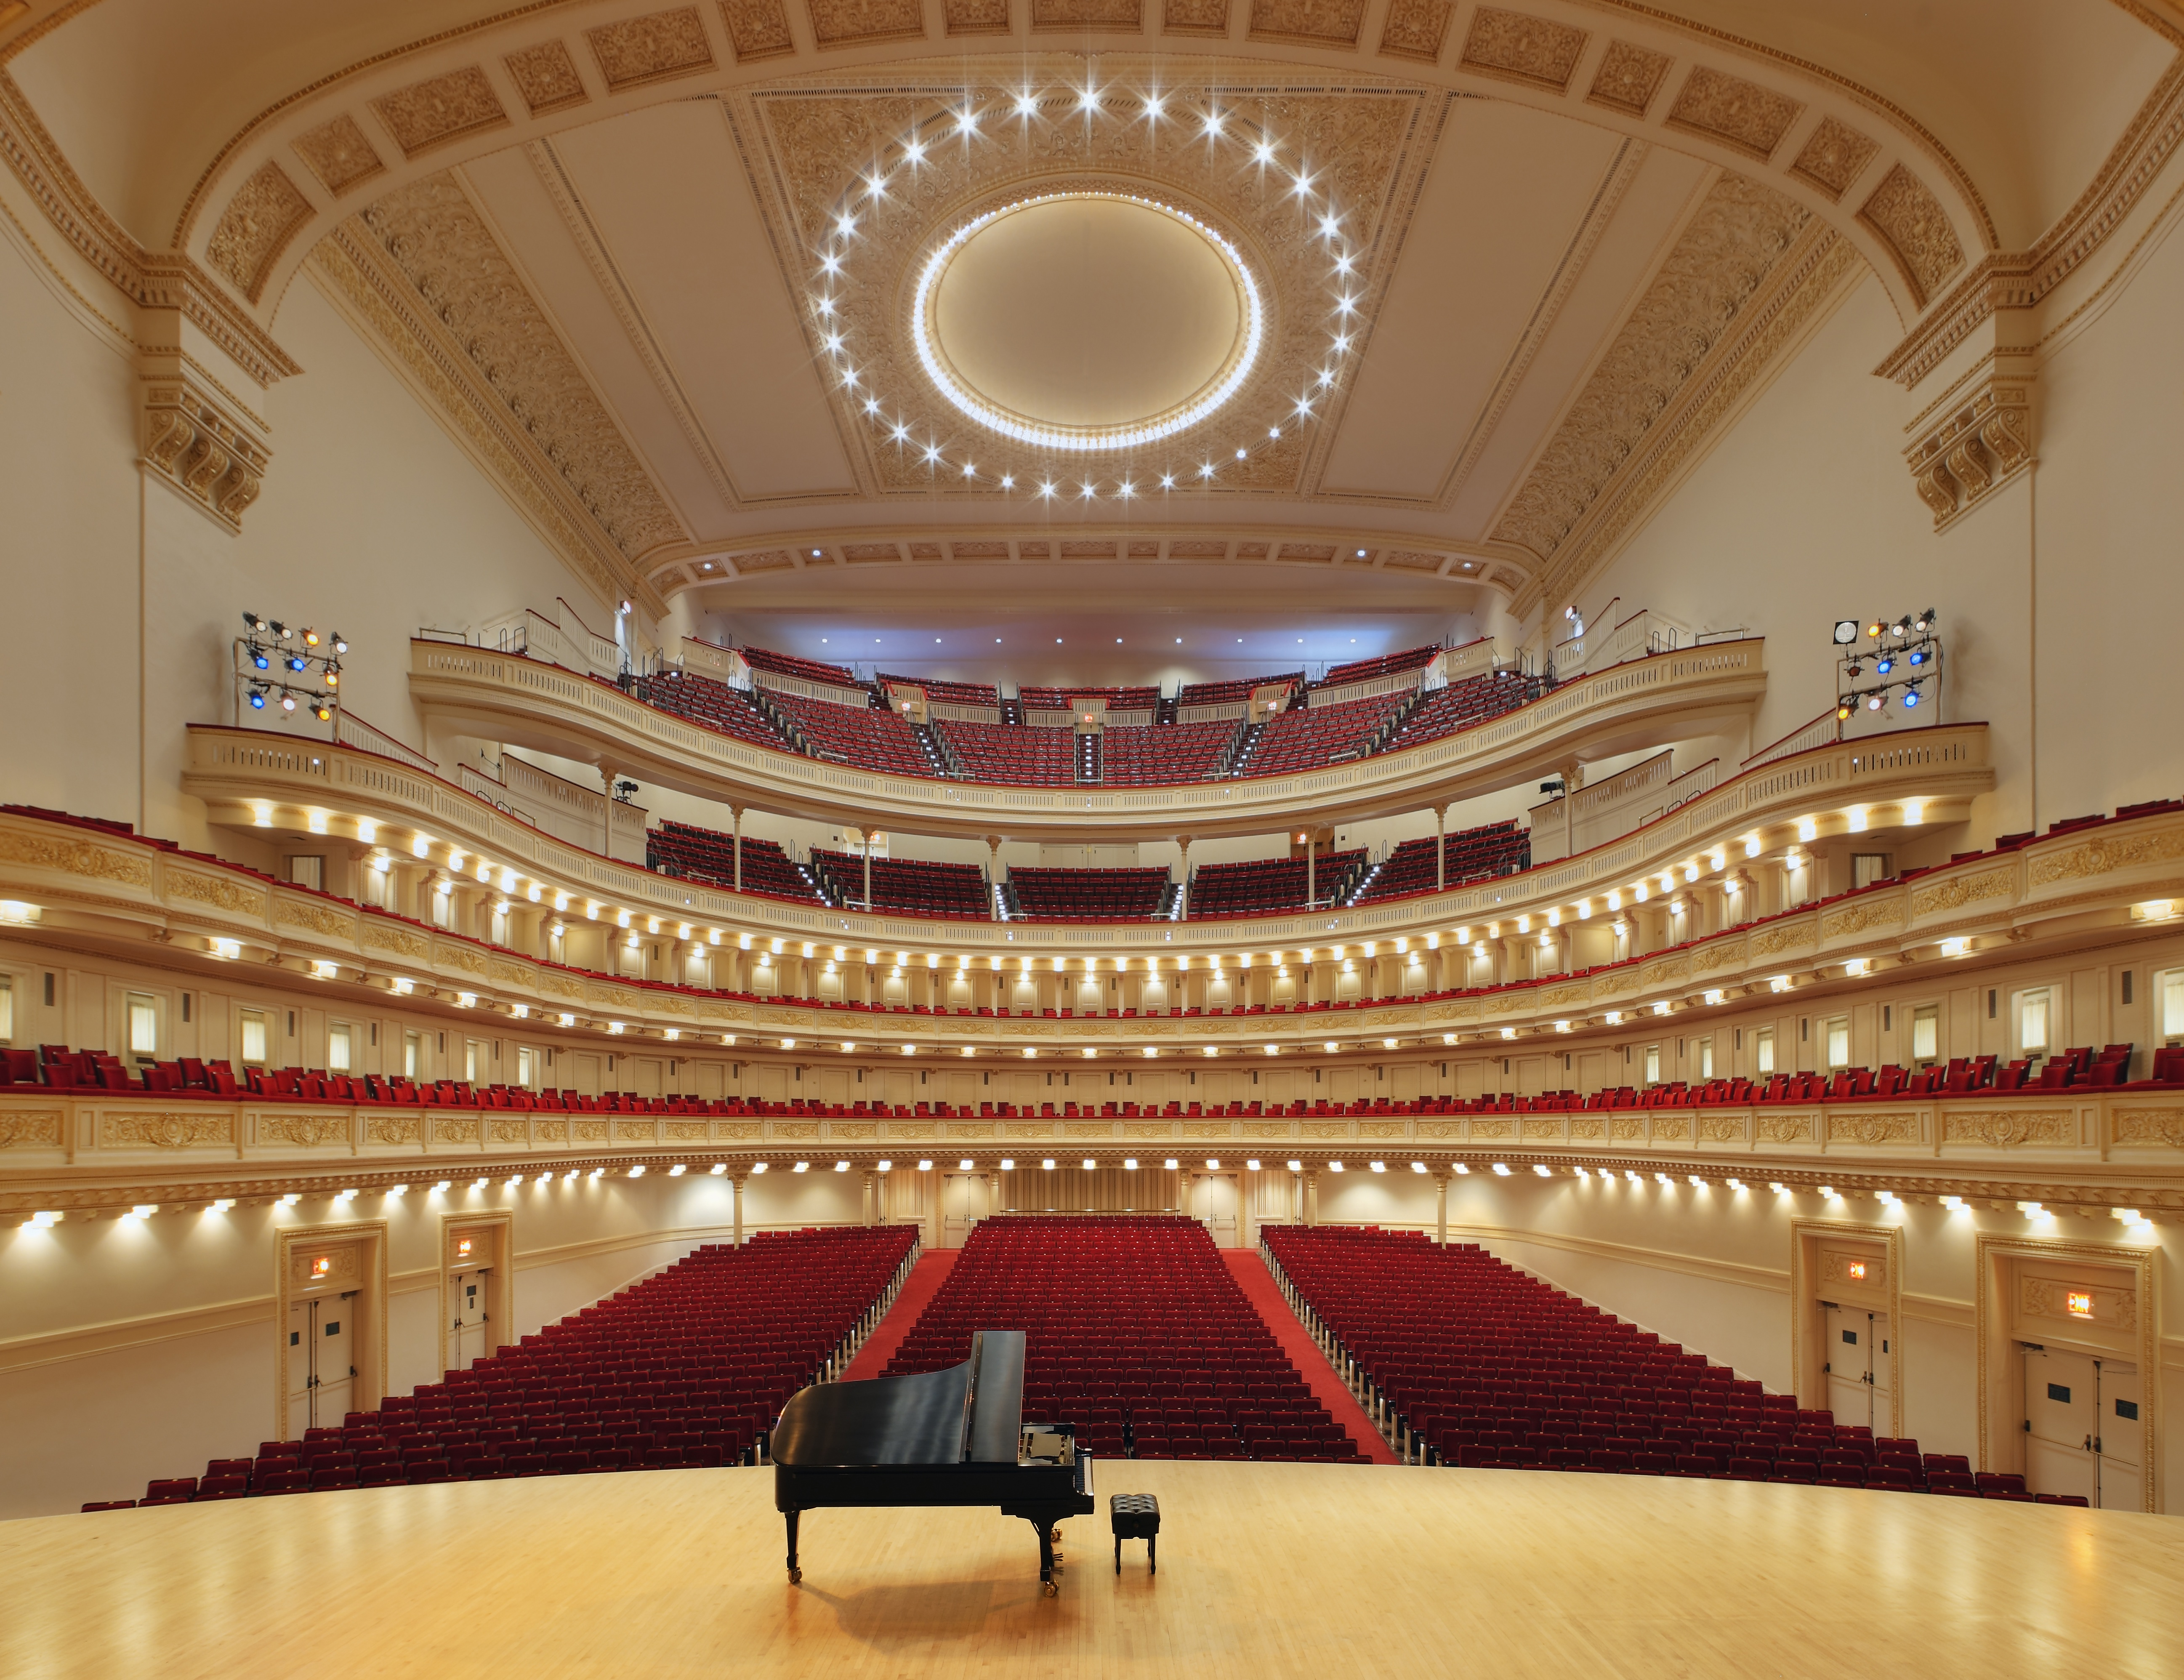 Hearing concerts for less at new york s carnegie hall for Hall interior images